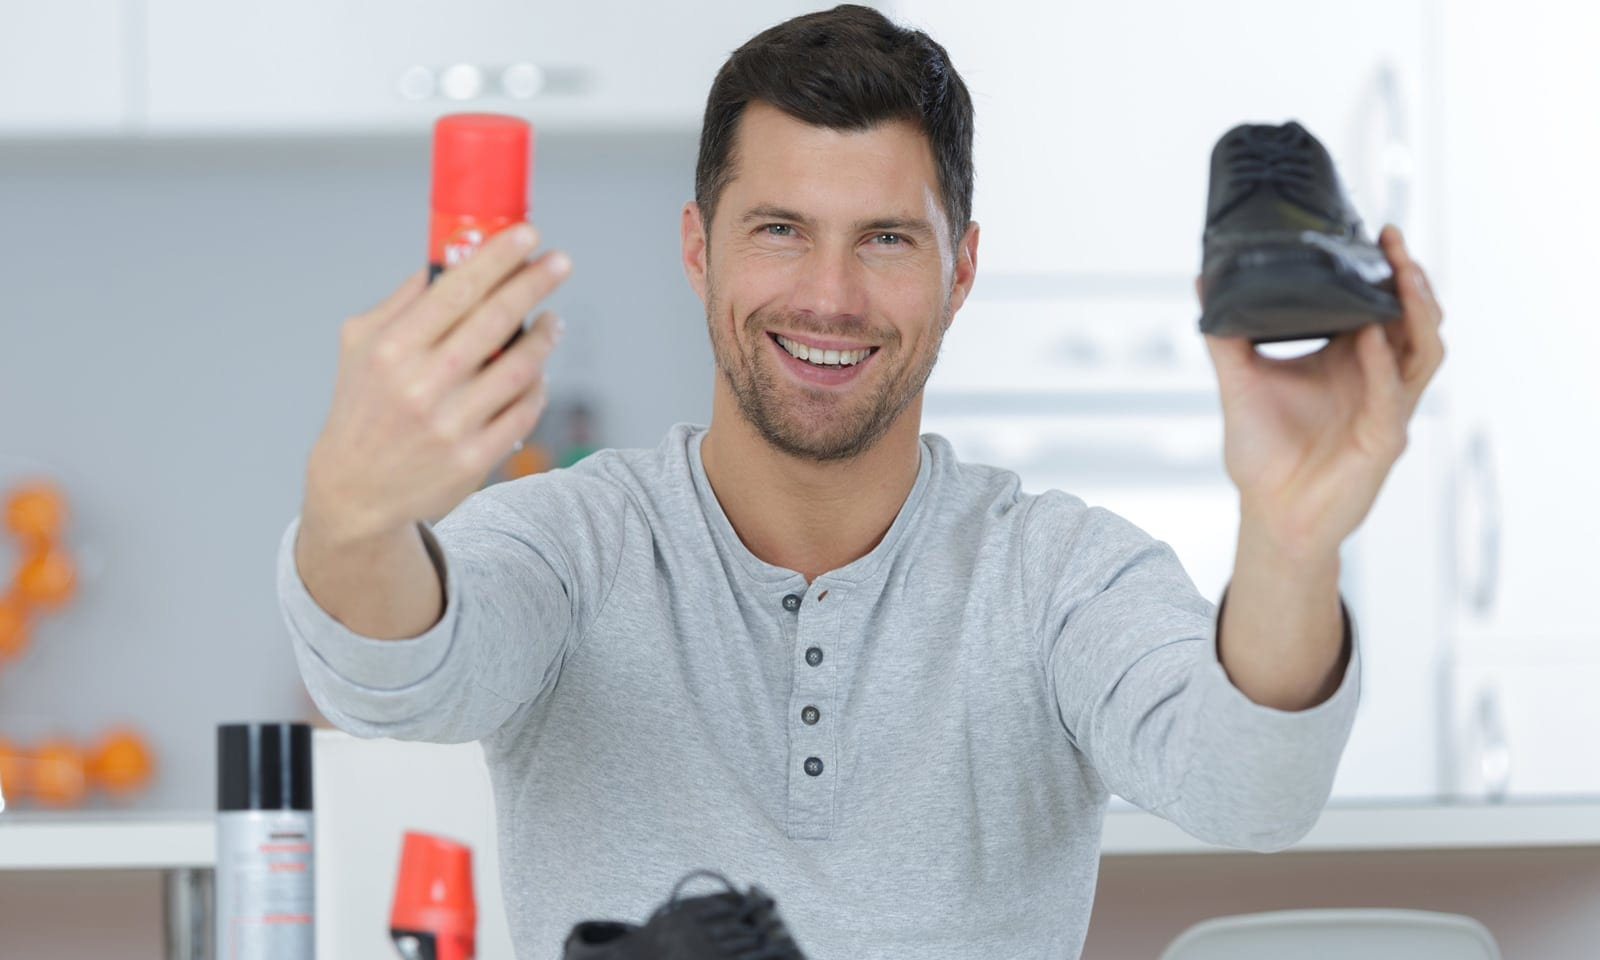 shoe-cleaner-image-1